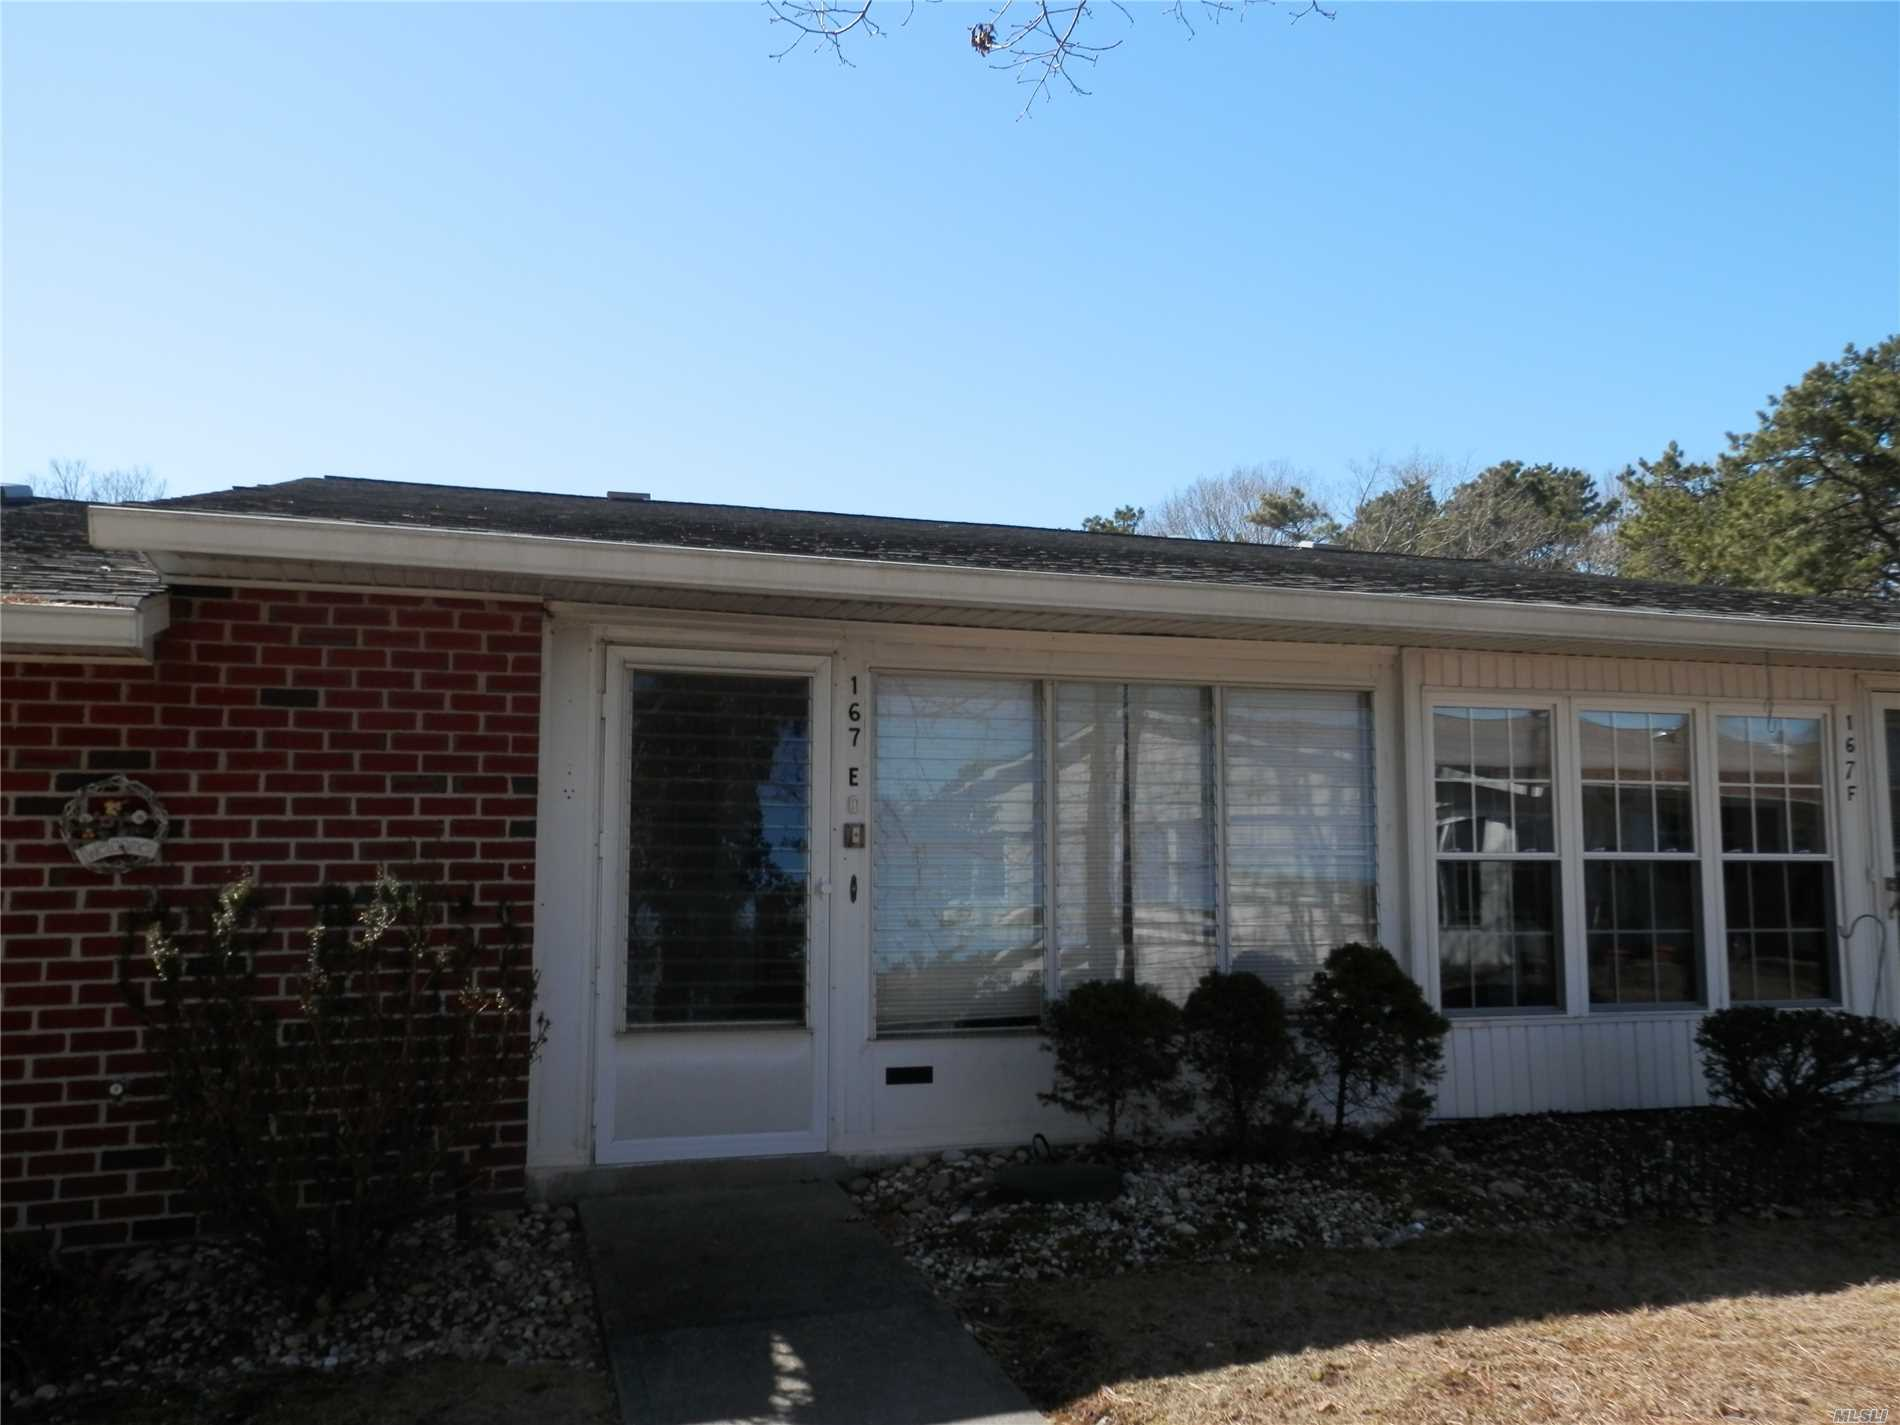 Lowest priced condo in Leisure Village! Added back door for easy access, skylight, newer hot water heater, washer/dryer, and dishwasher. Tenant occupied until 5/1/2019. Leisure Village has a one pet policy.